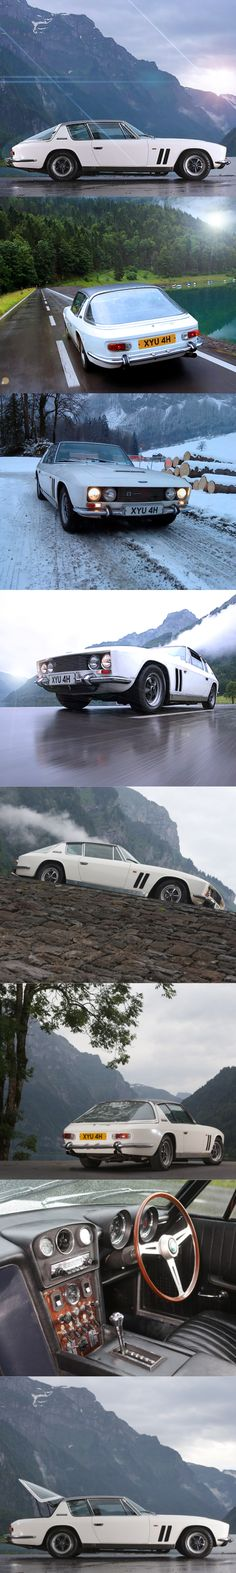 1968 Jensen FF Interceptor / Ferguson 4wd / UK Italy / 6.3l V8 / Touring / white / 17-361